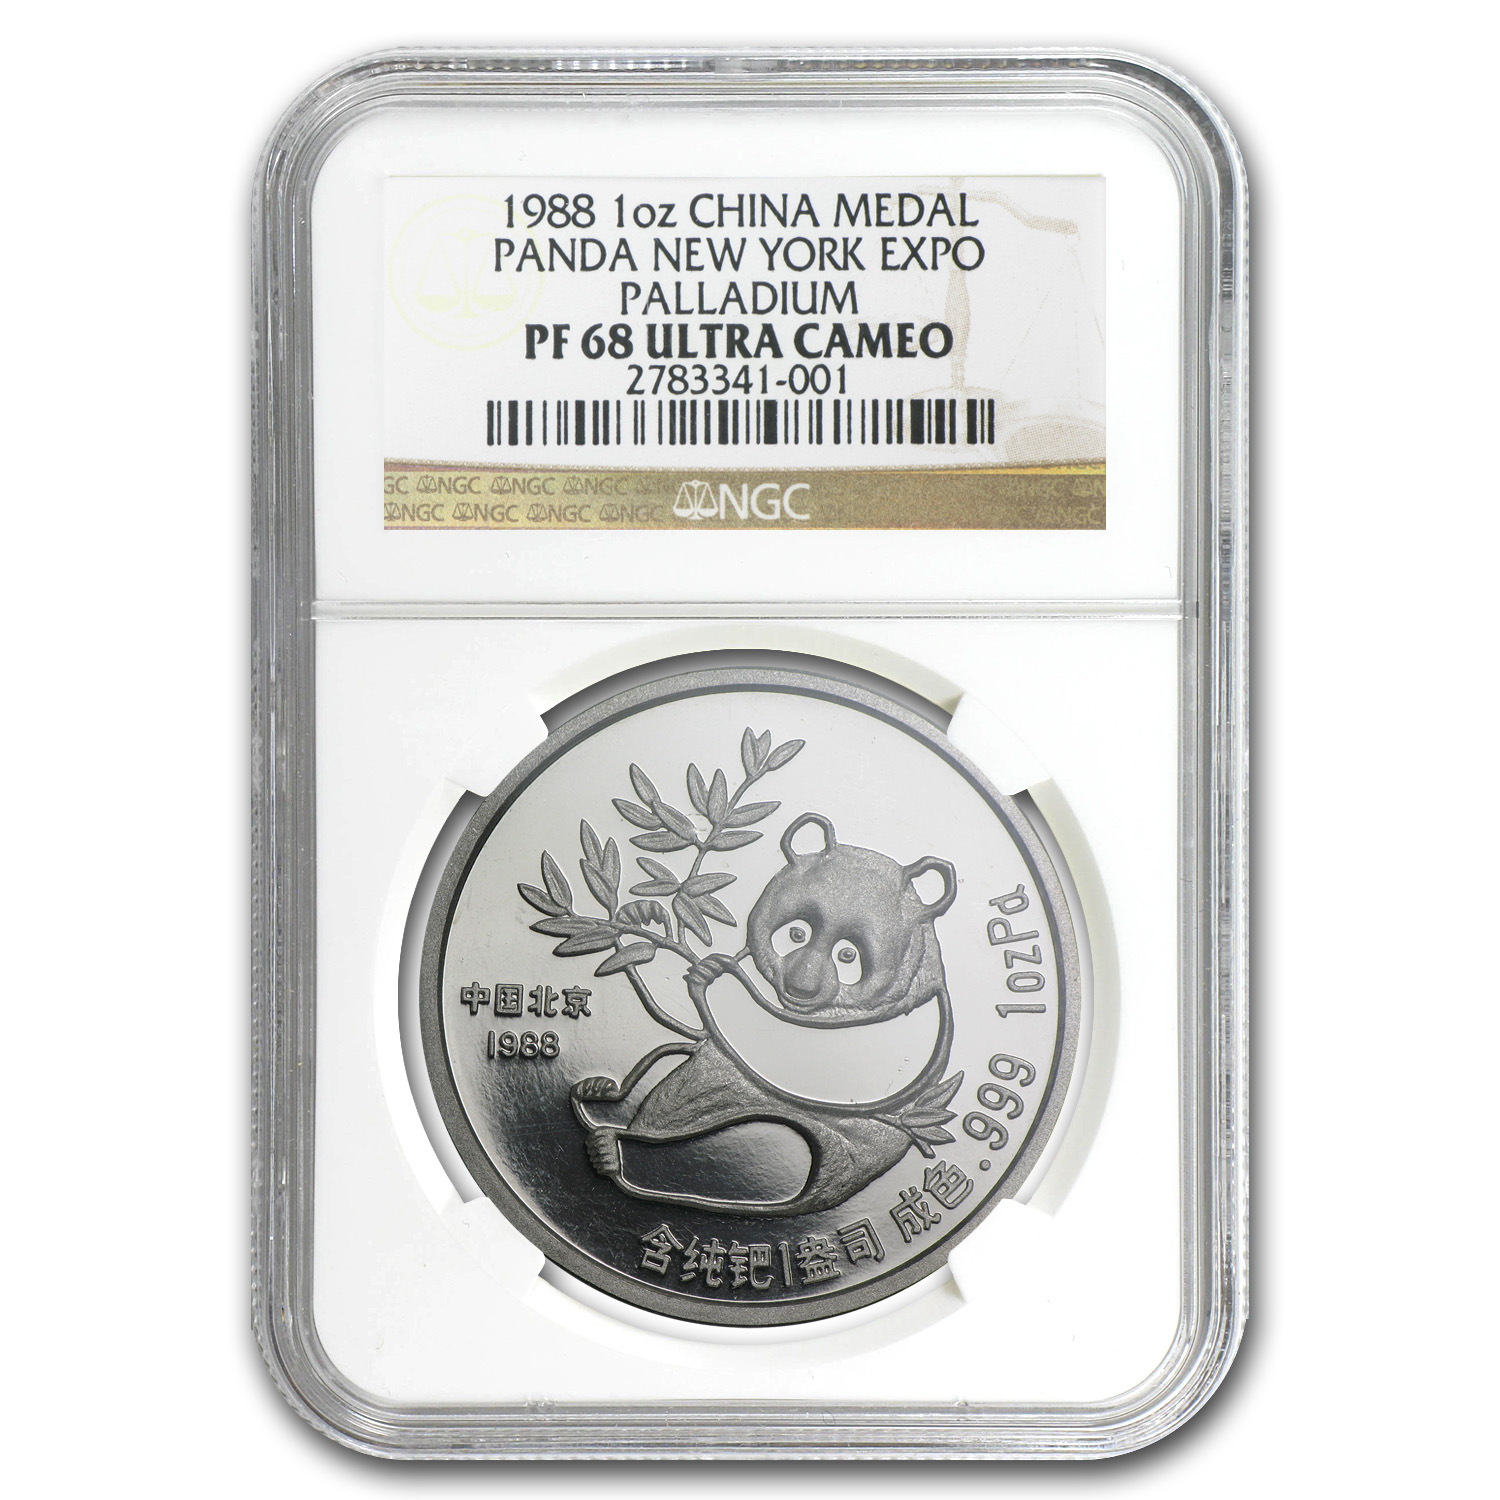 1988 1 oz Palladium Chinese Panda PF-68 NGC (New York Coin Expo)